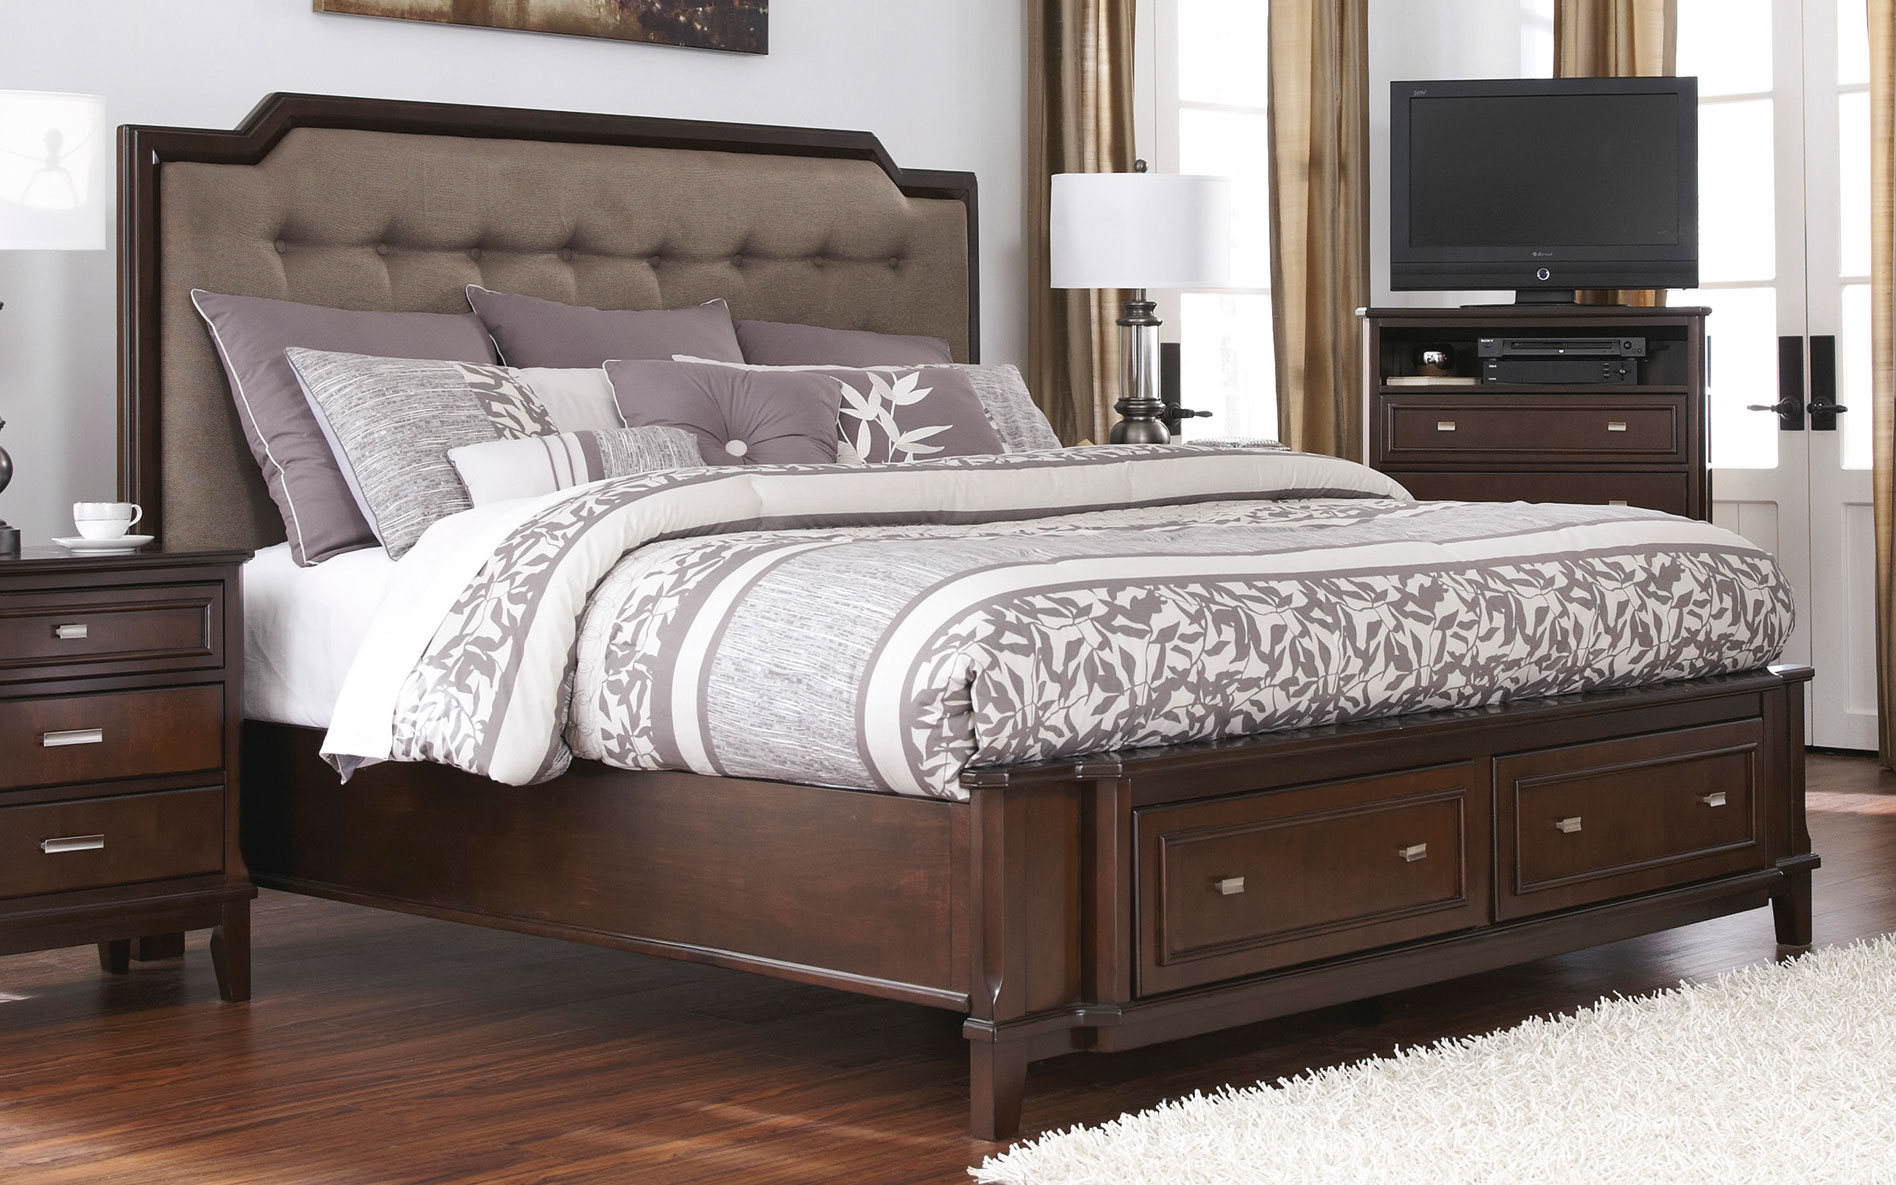 Luxury Comforter Sets King | King Headboards | Bed Bath and Beyond Queen Comforter